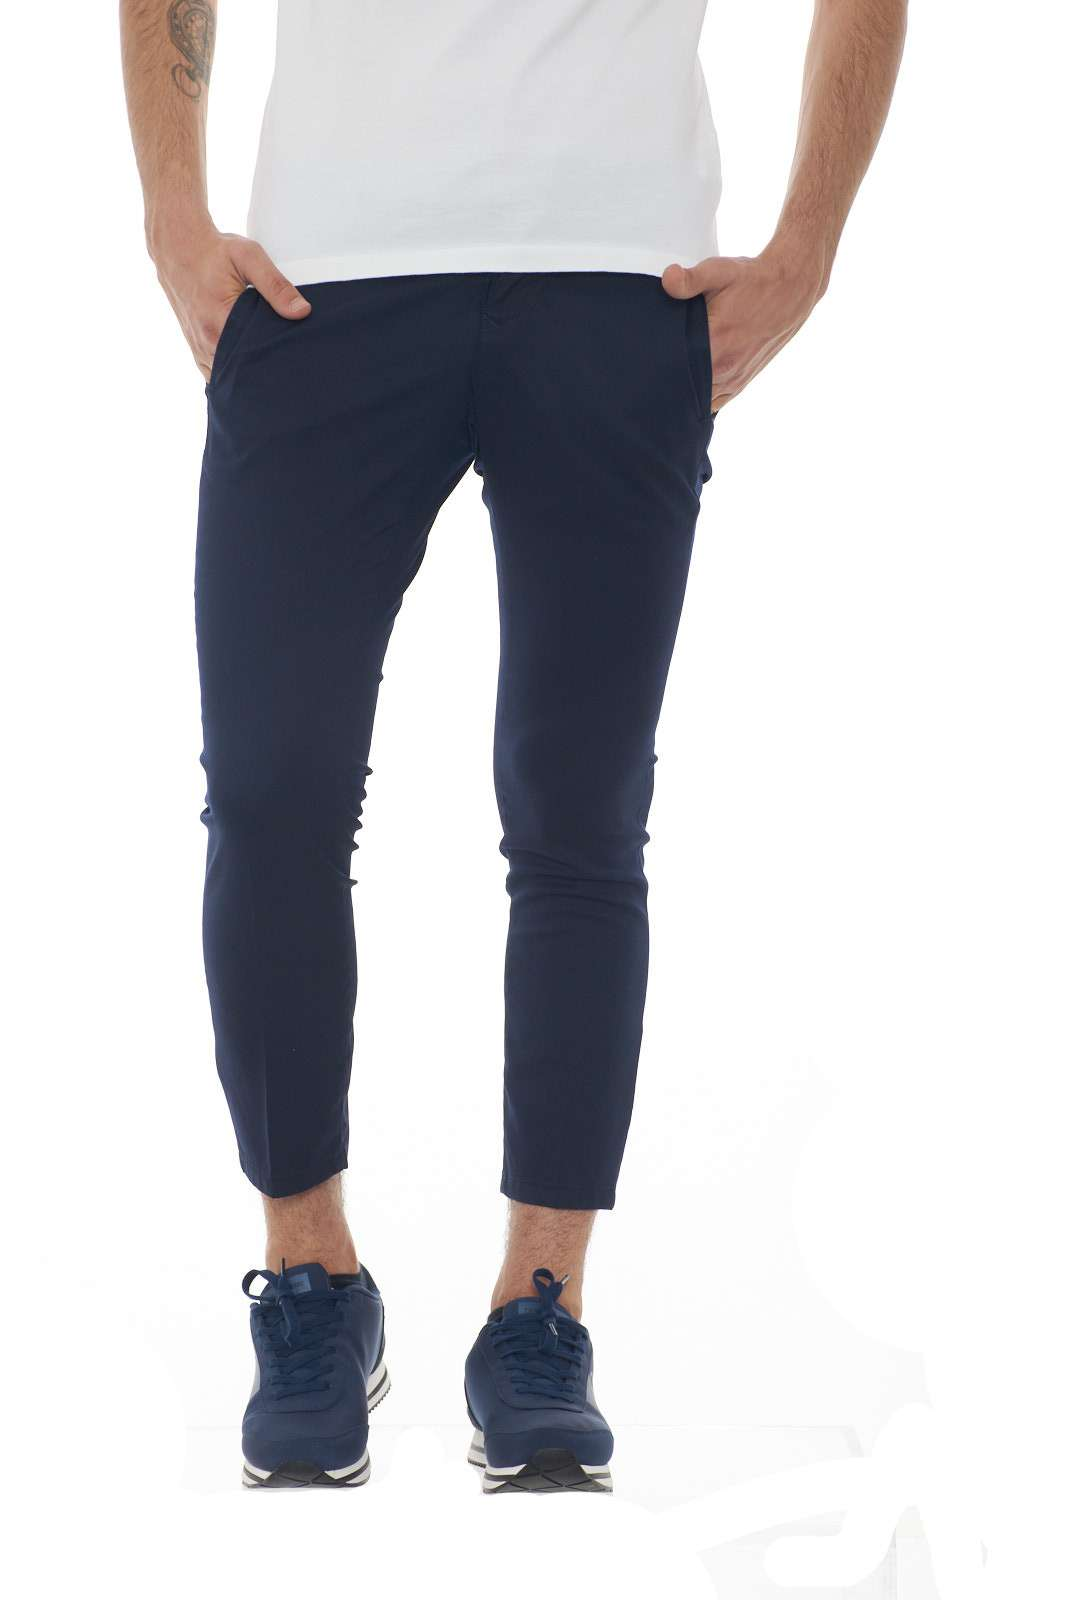 https://www.parmax.com/media/catalog/product/a/i/PE-outlet_parmax-pantaloni-uomo-Michael-Coal-CLARK3361-A.jpg